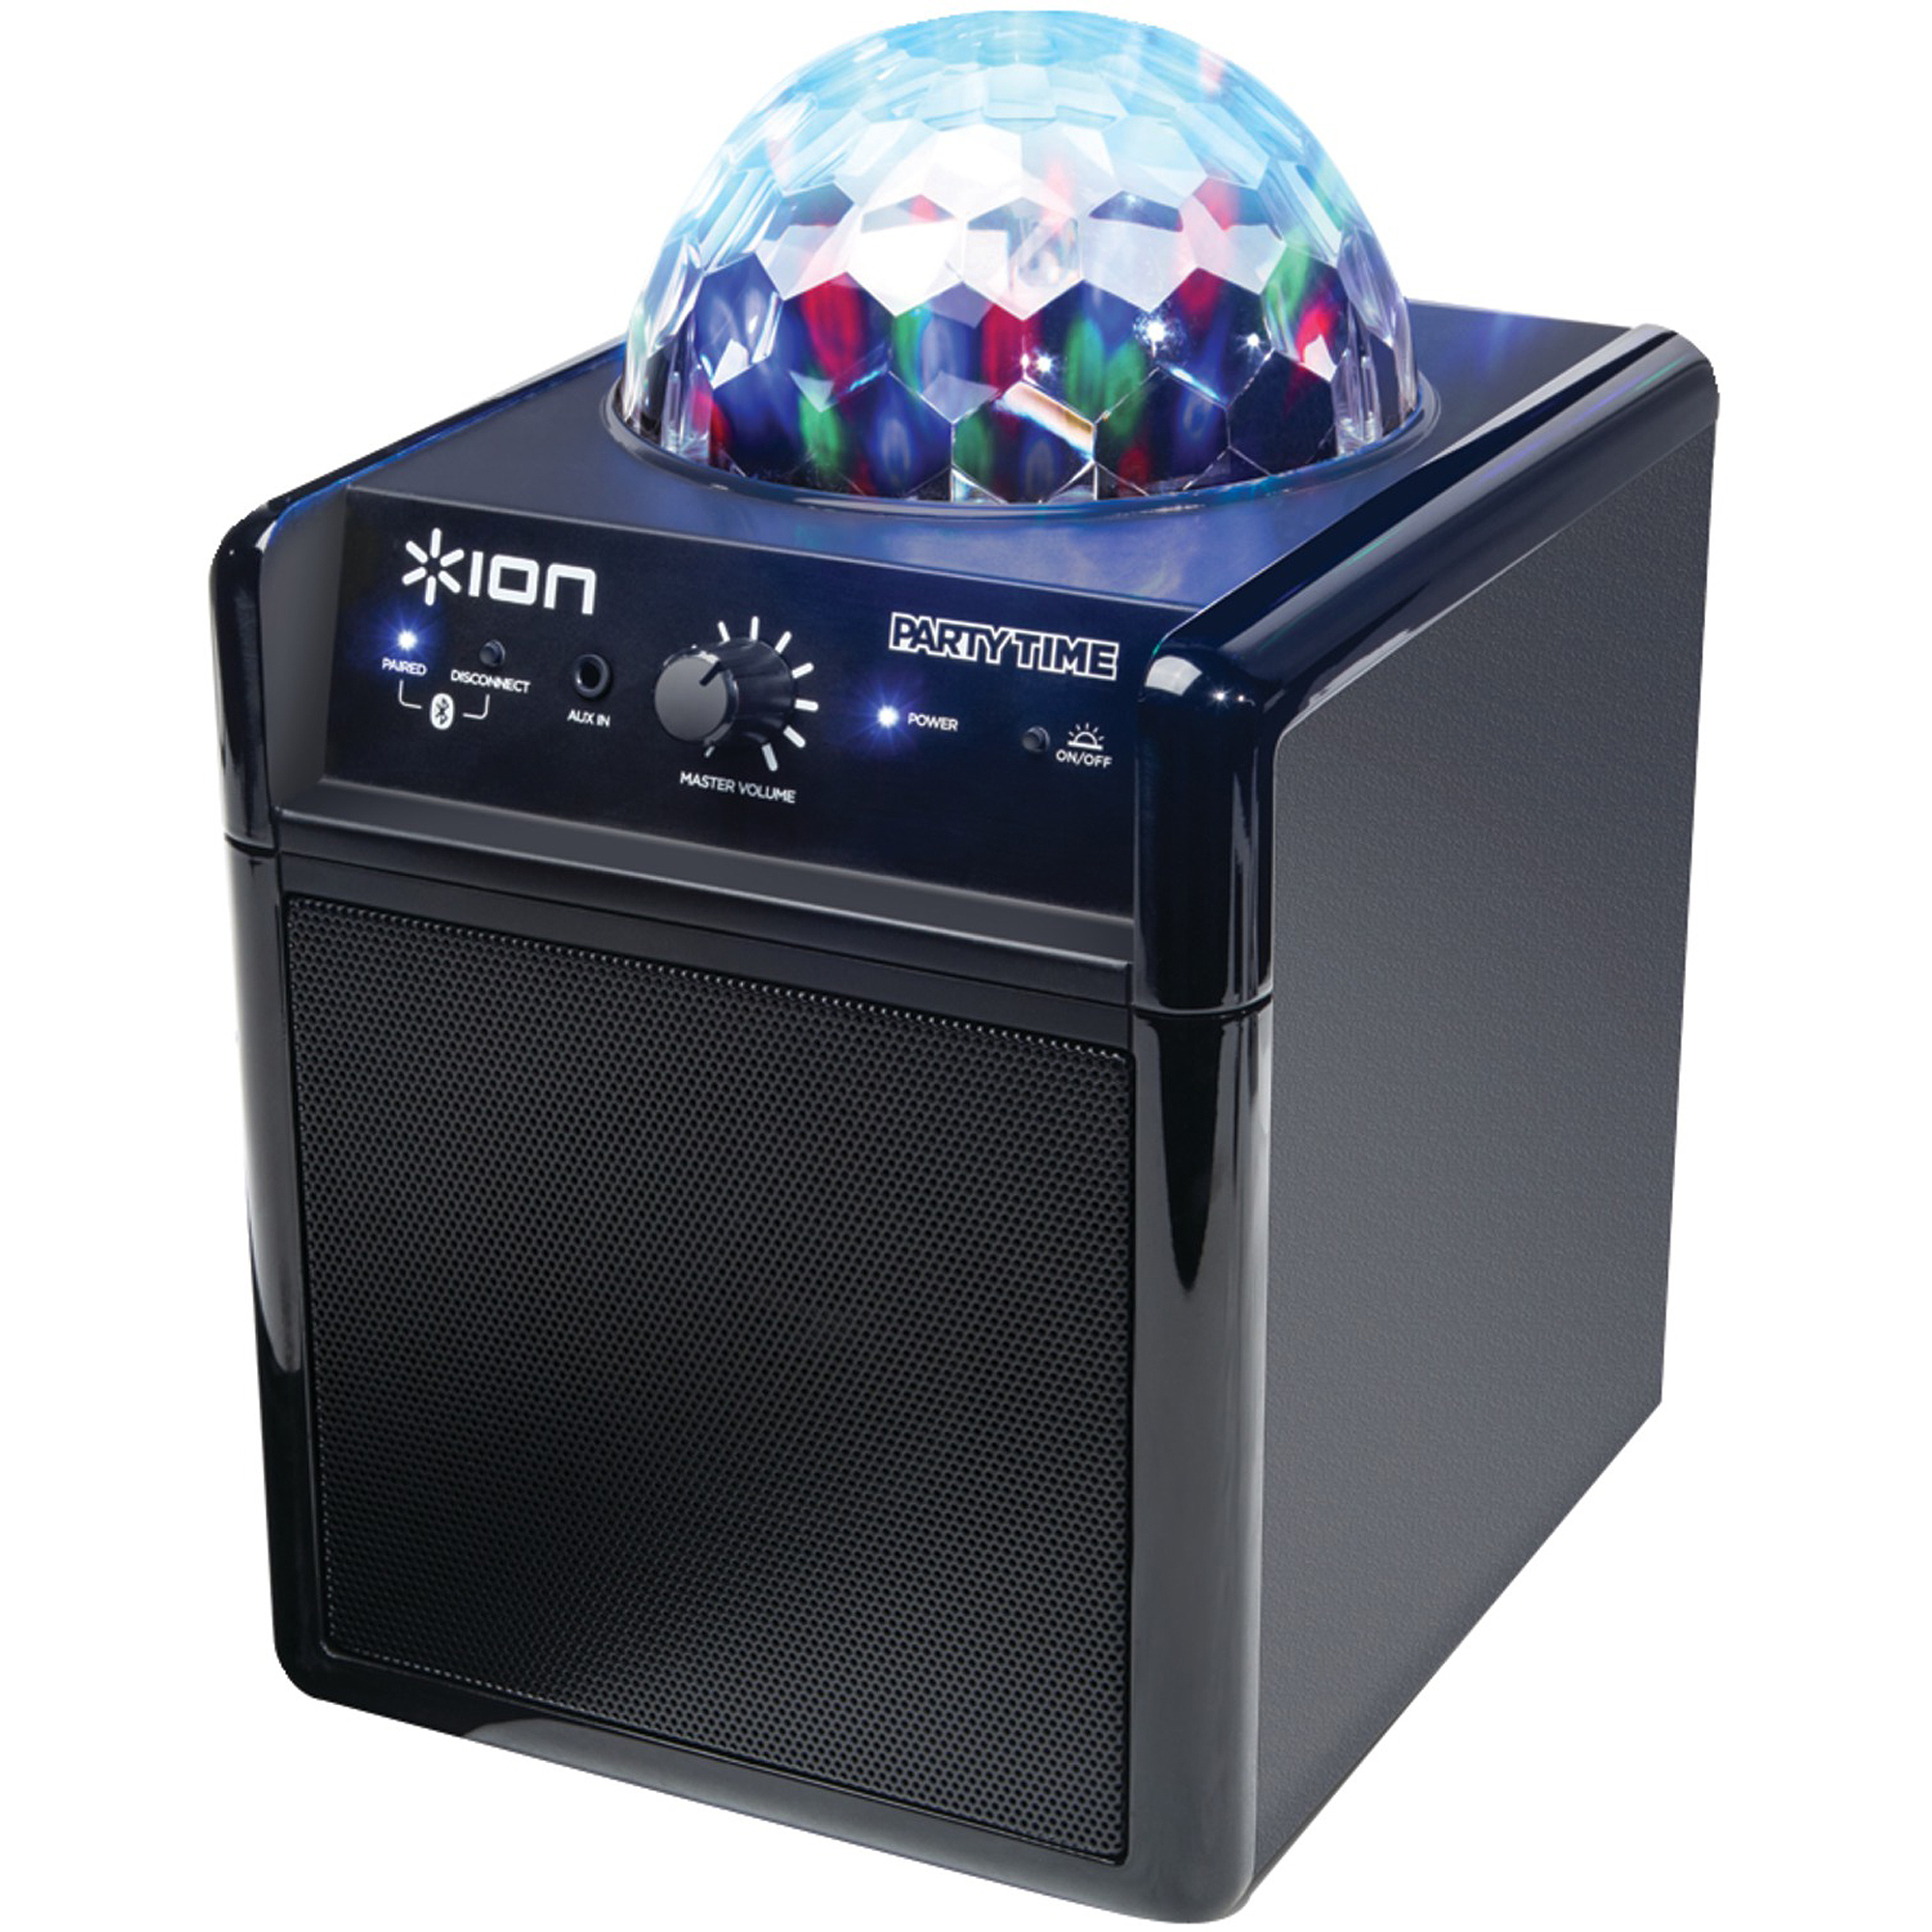 ION IPA19 Party Time Lighting and Wireless Speaker System